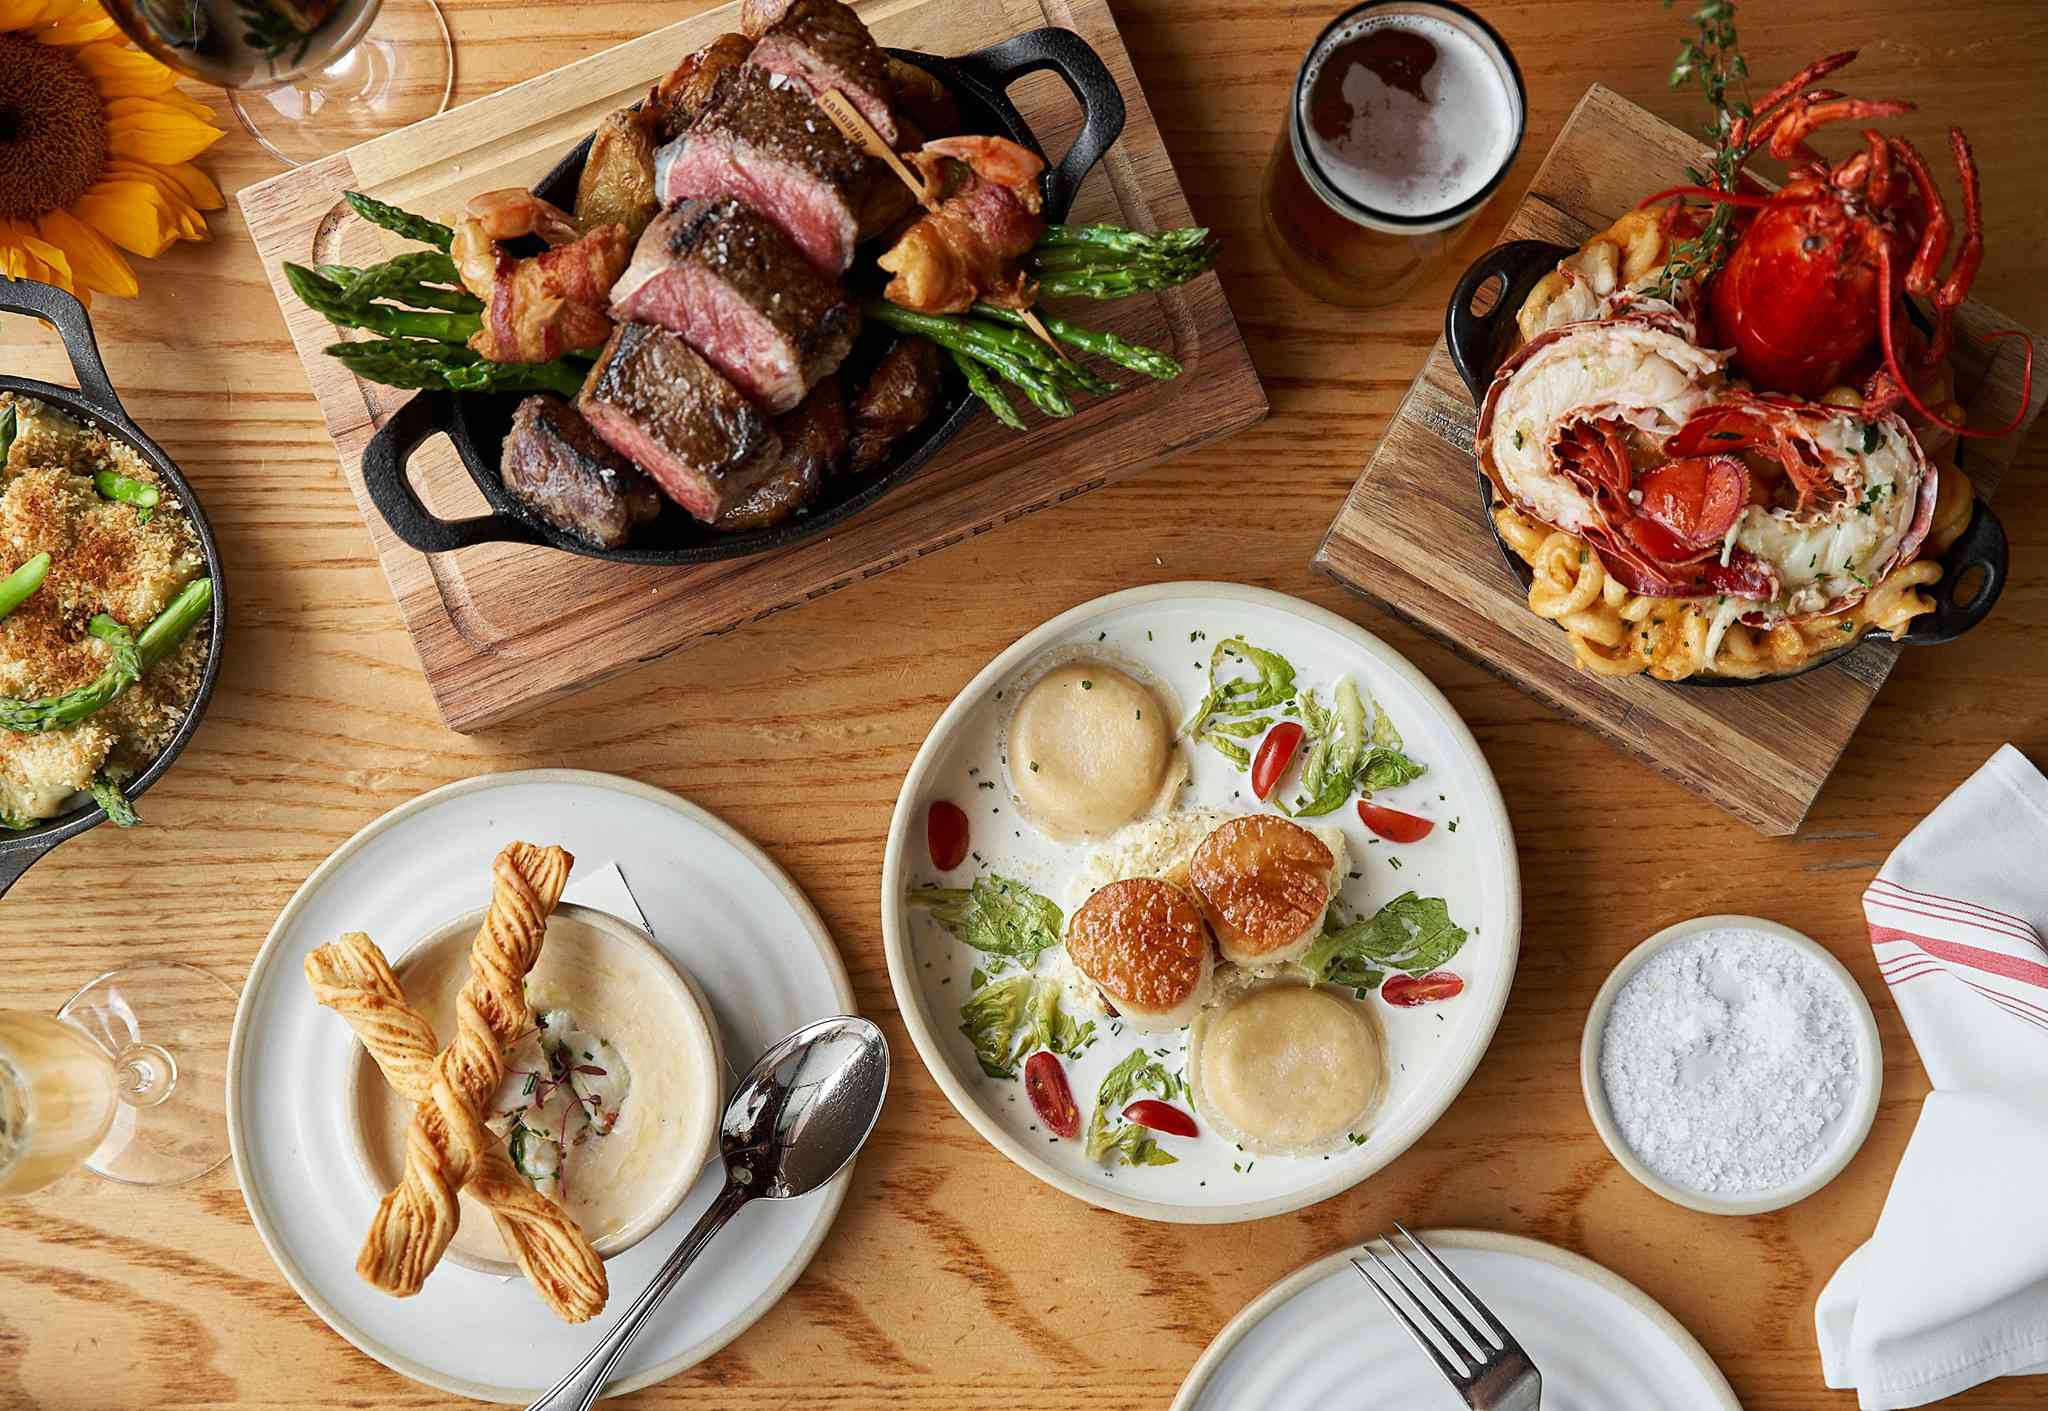 A table filled with different professionally plated dishes from Yardbird